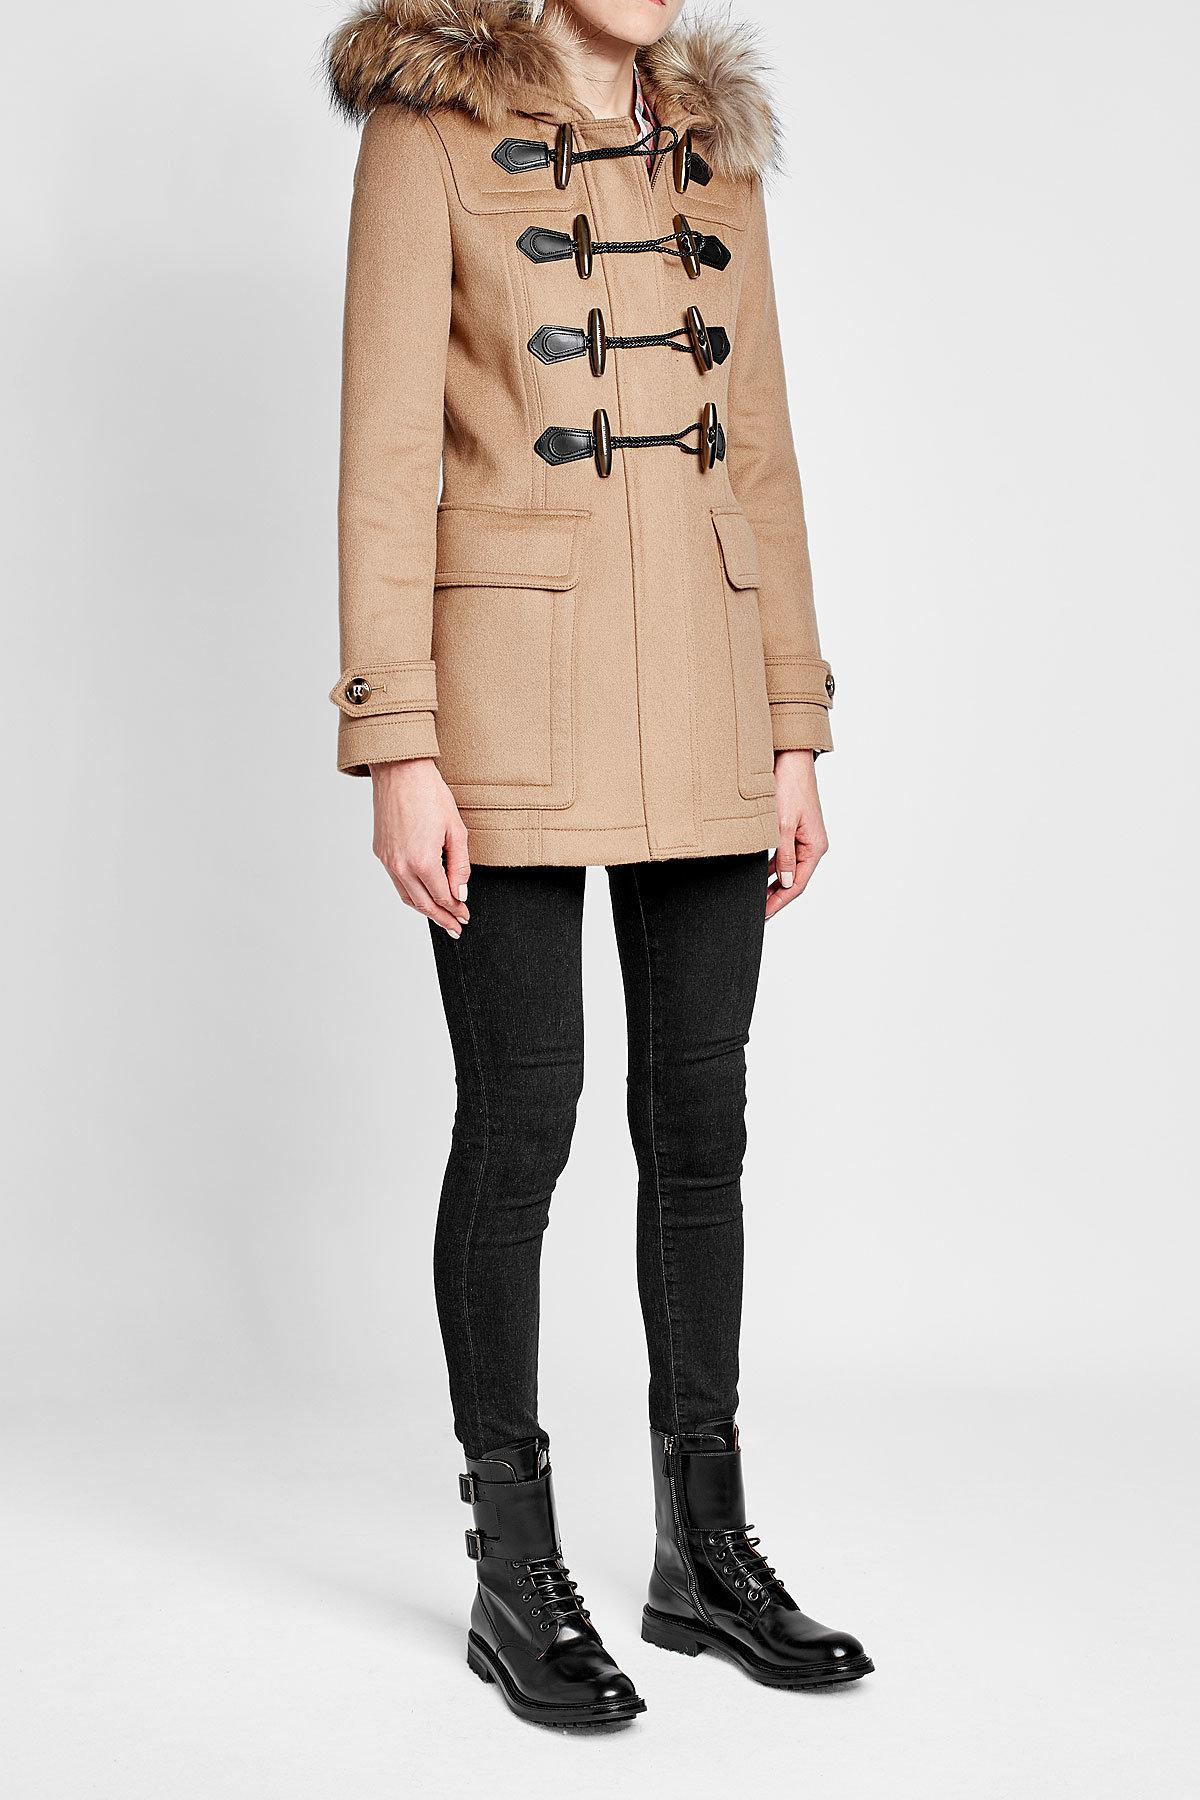 2e197ff3322ae Burberry Wool Duffle Coat With Fur-trimmed Hood in Natural - Lyst